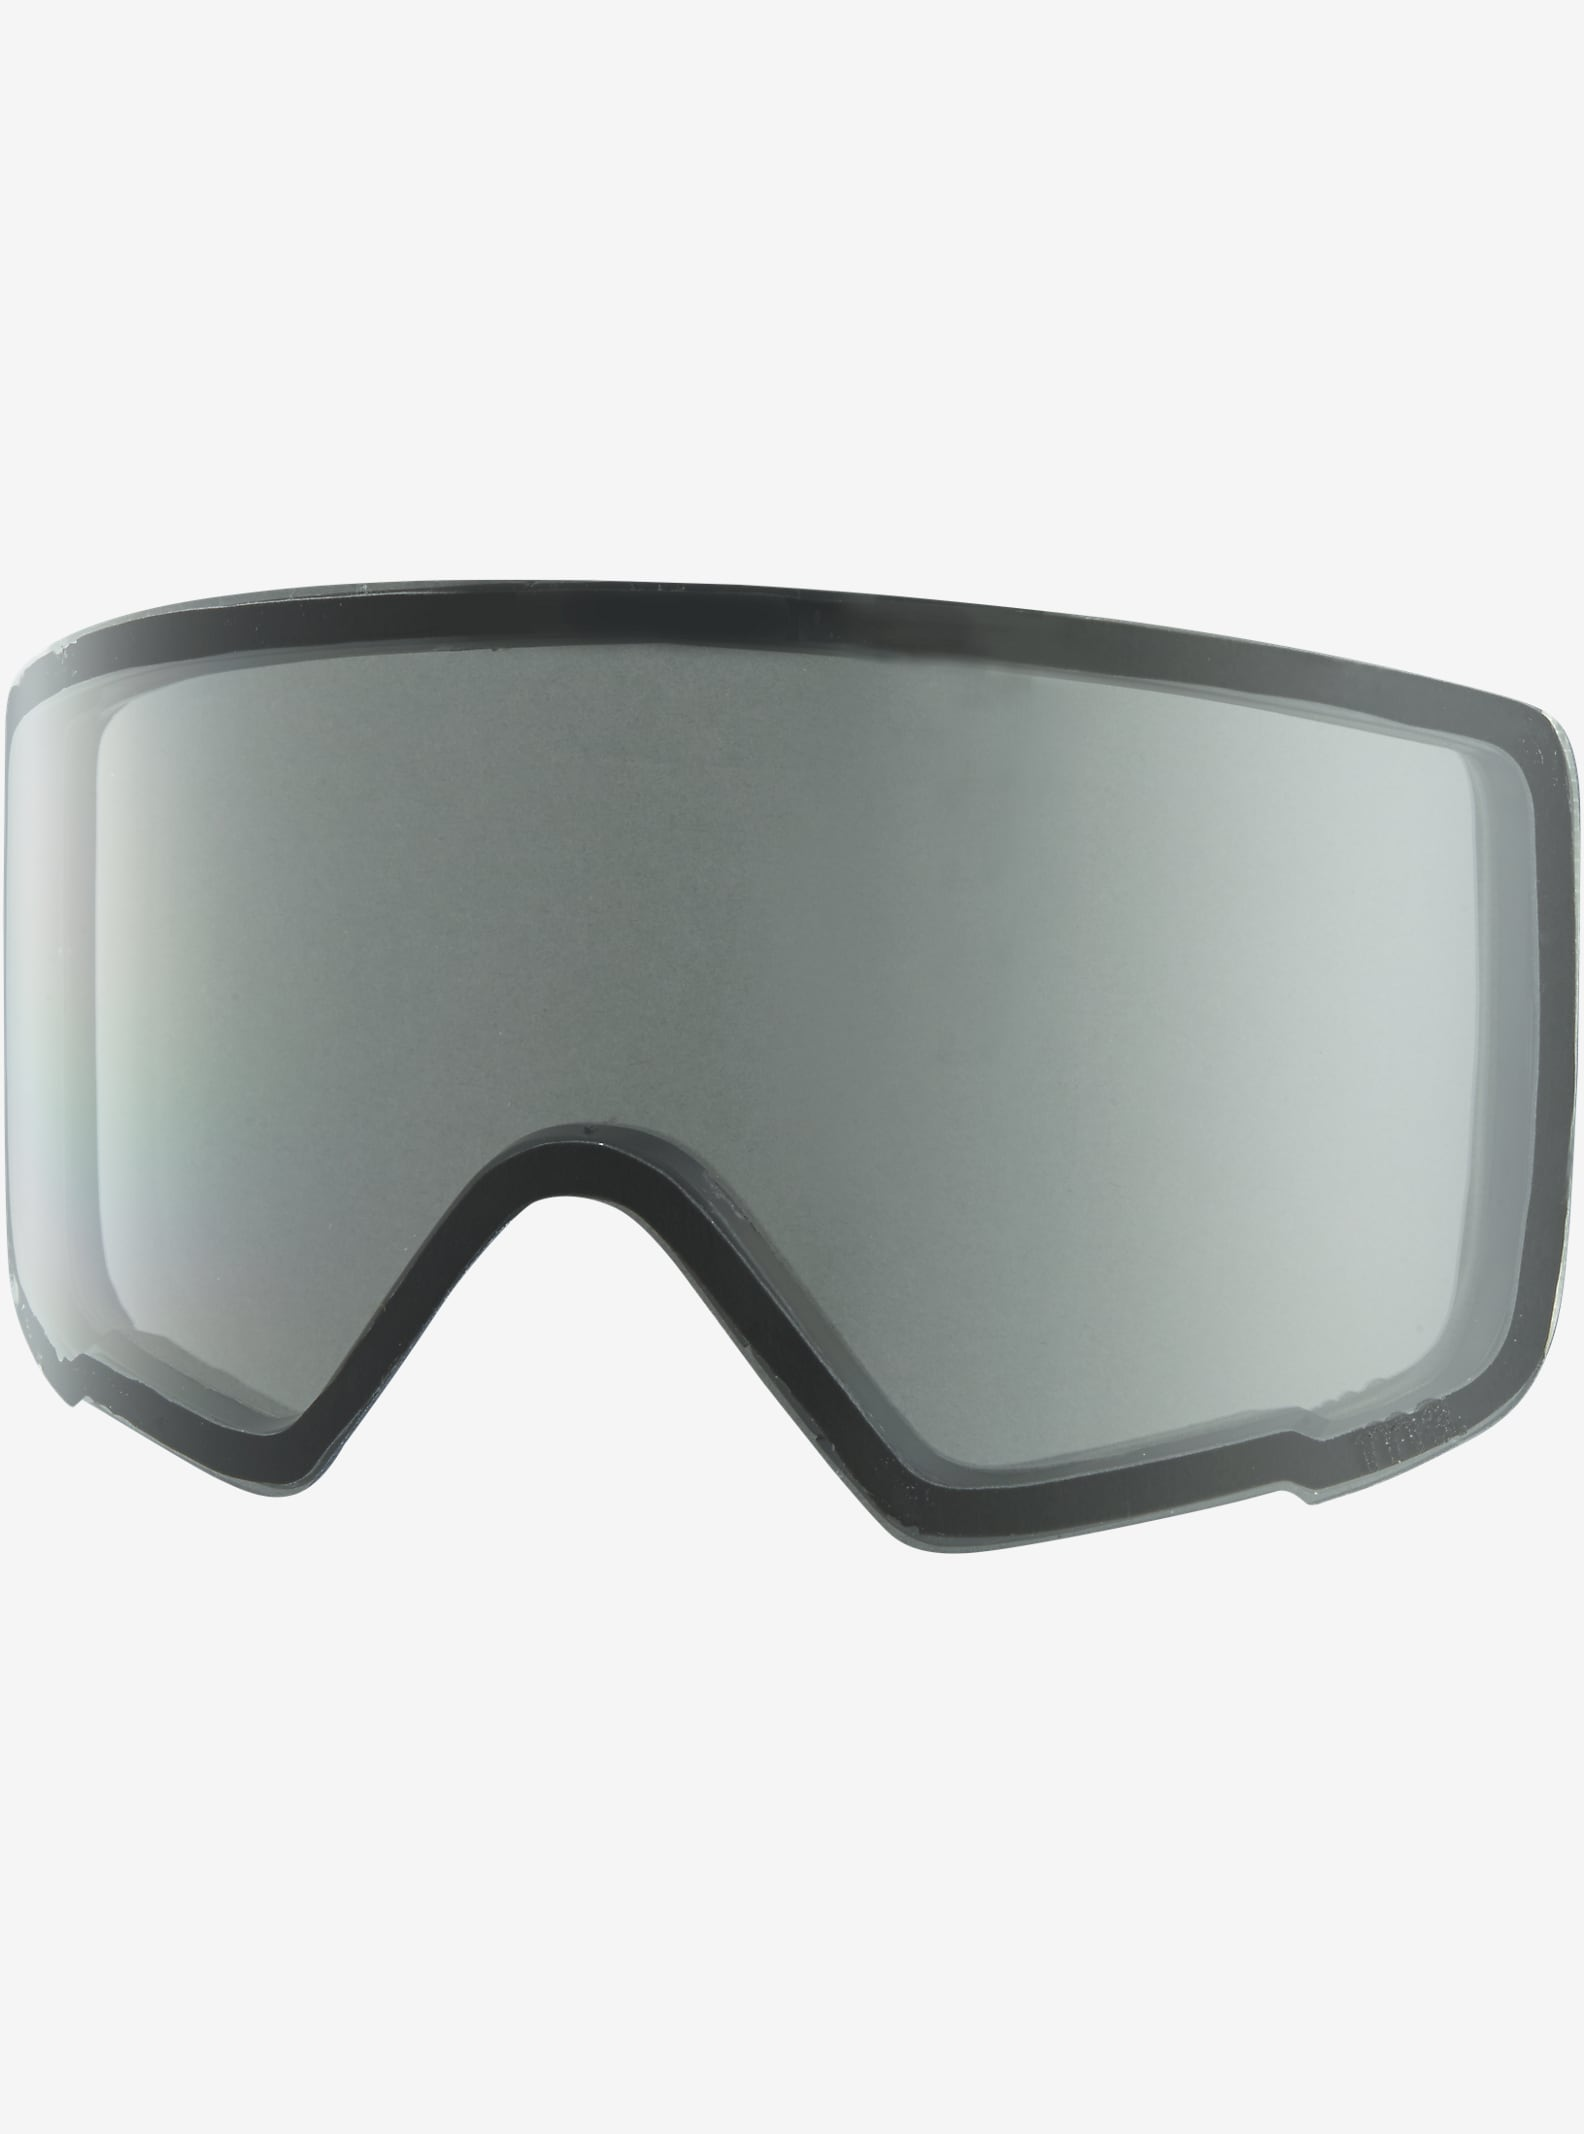 anon. M3 Goggle Lens shown in Clear (85% VLT)